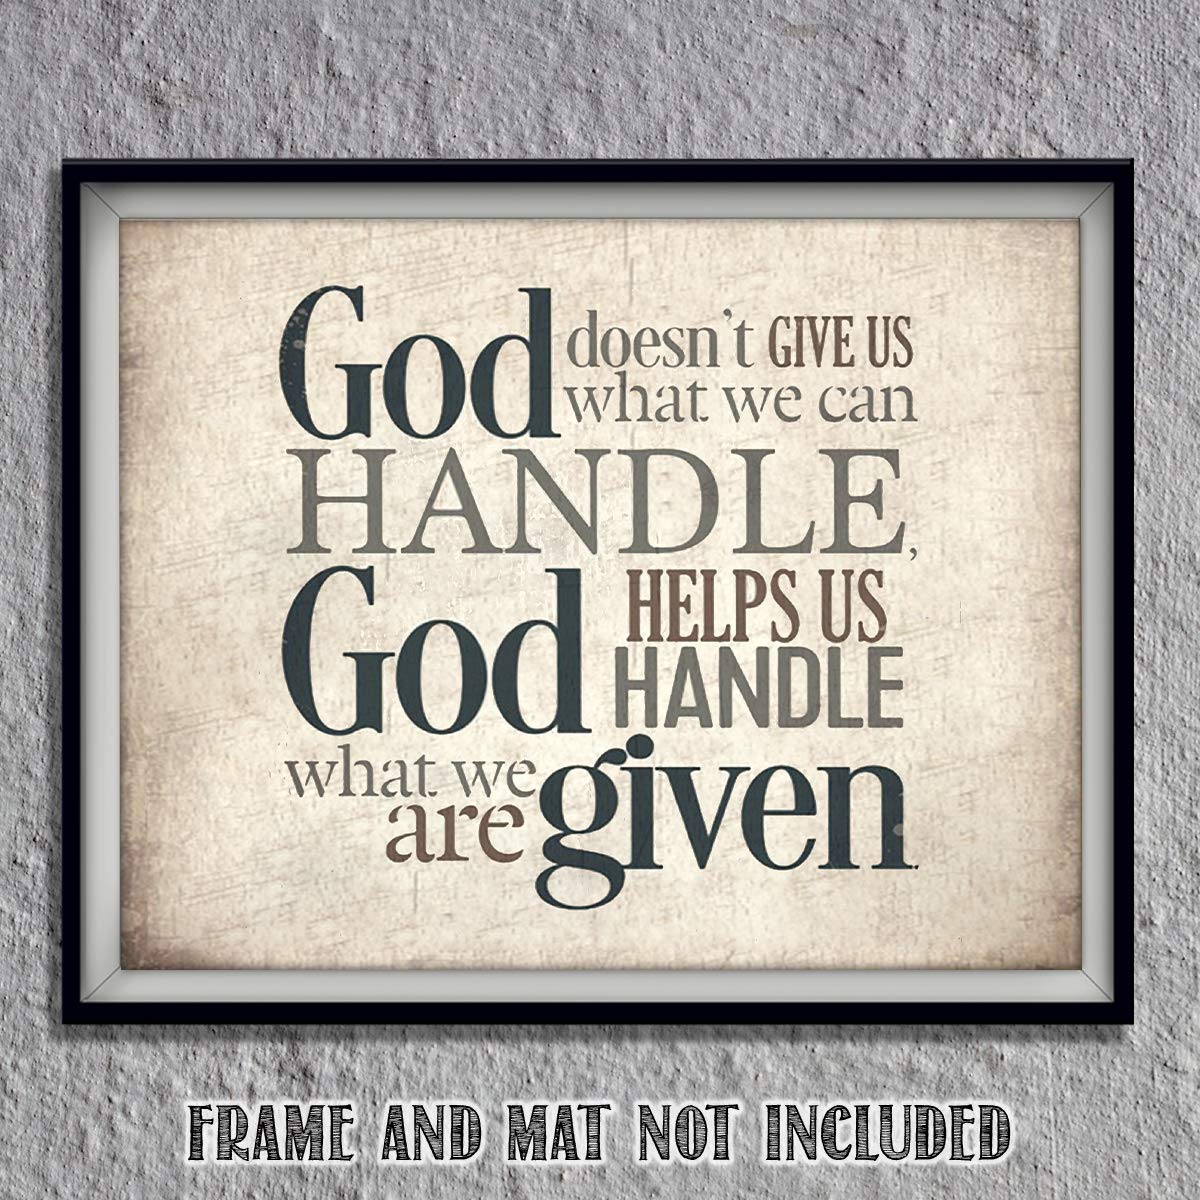 """""""God Helps Us Handle What We Are Given"""" Christian Wall Art- 10 x 8""""- Spiritual Wall Prints-Ready to Frame. Modern Typographic Home-Office-Church-School Décor. Perfect Christian Gift for Encouragement!"""